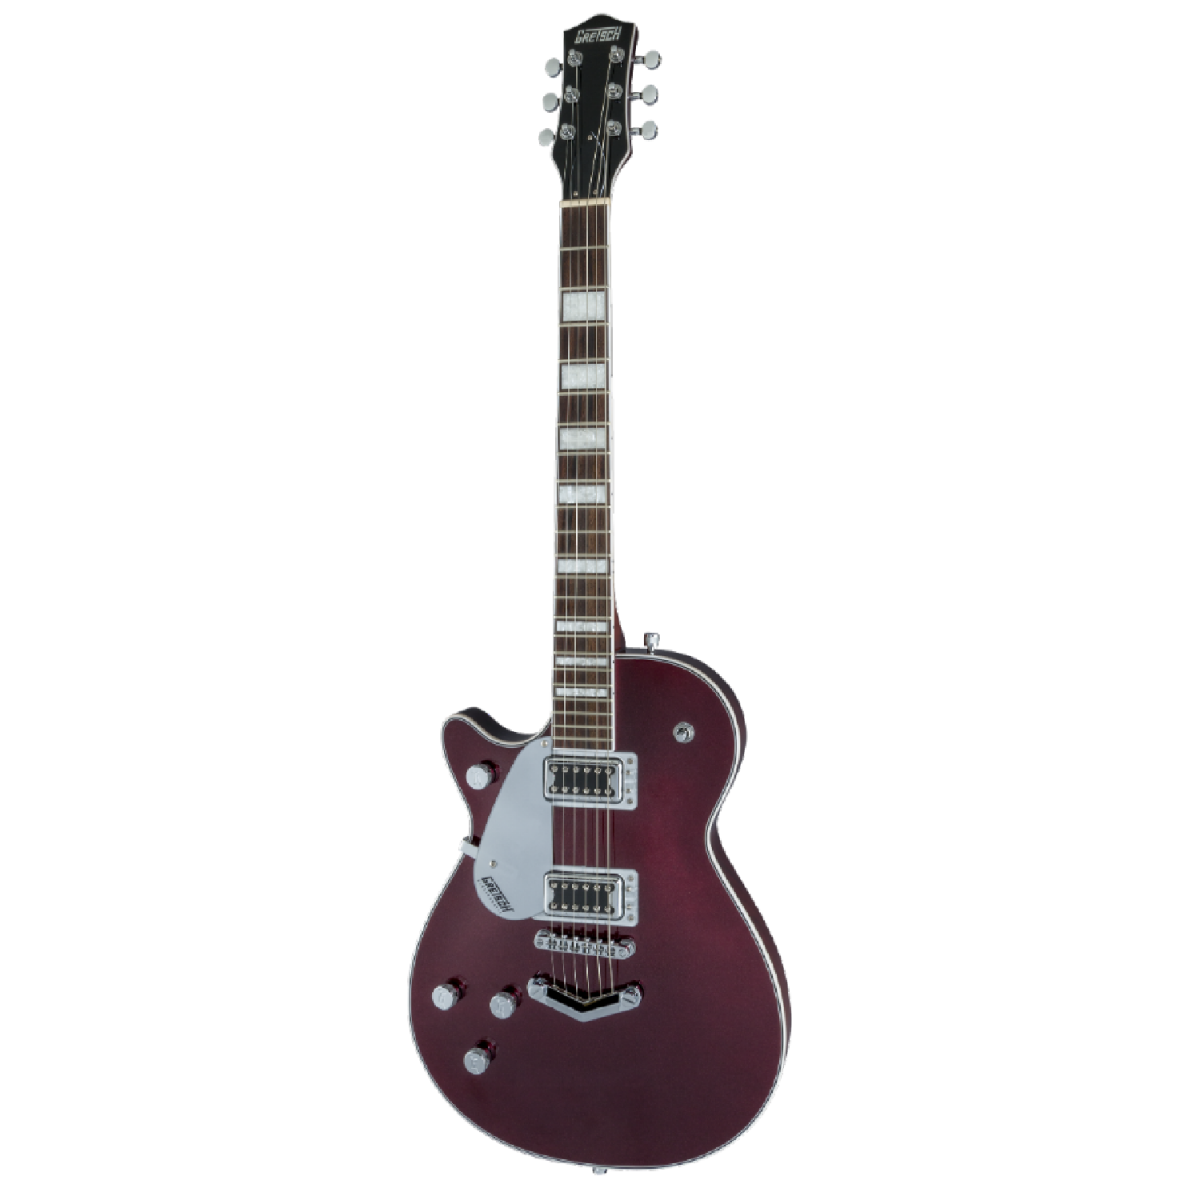 Gretsch G5220 Electromatic Jet Left-Handed Cherry slant